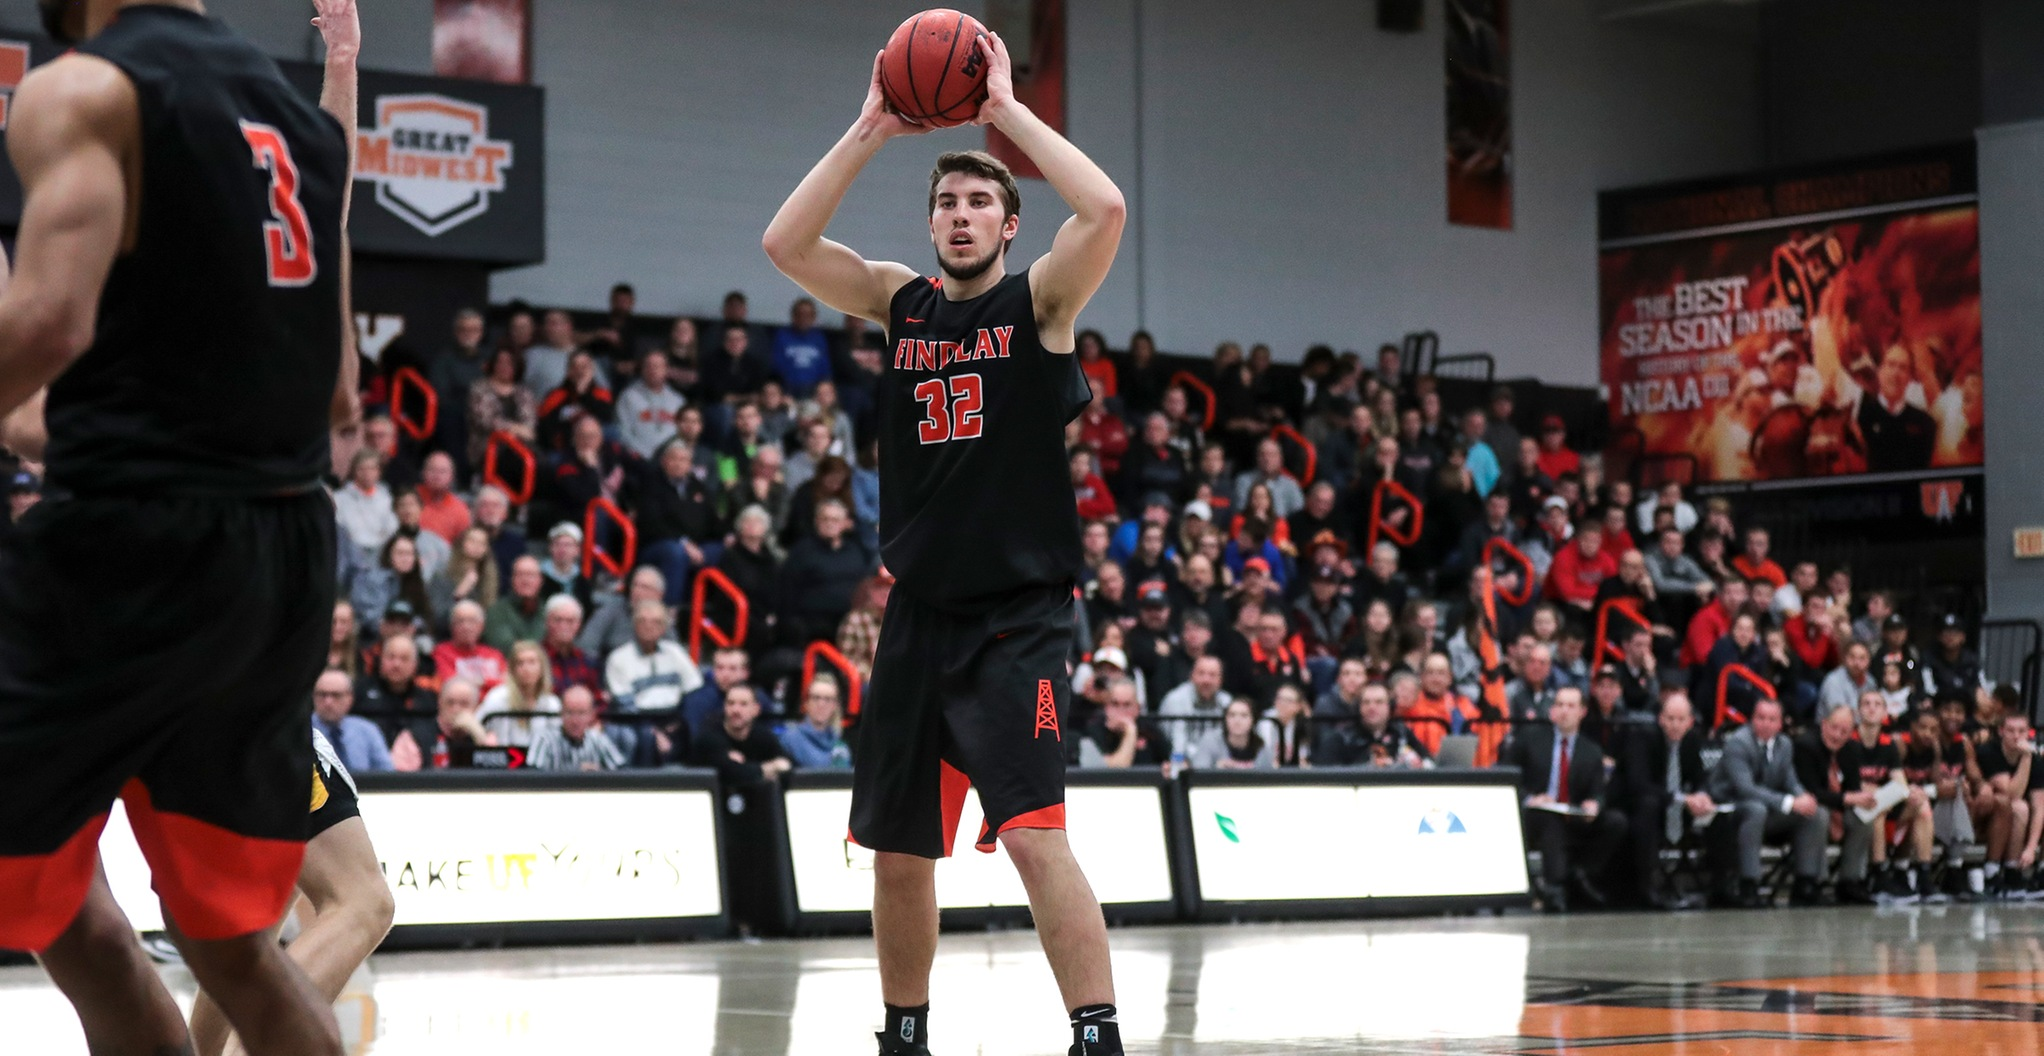 #18 Oilers Earn 16th Win | Beat Panthers 68-49